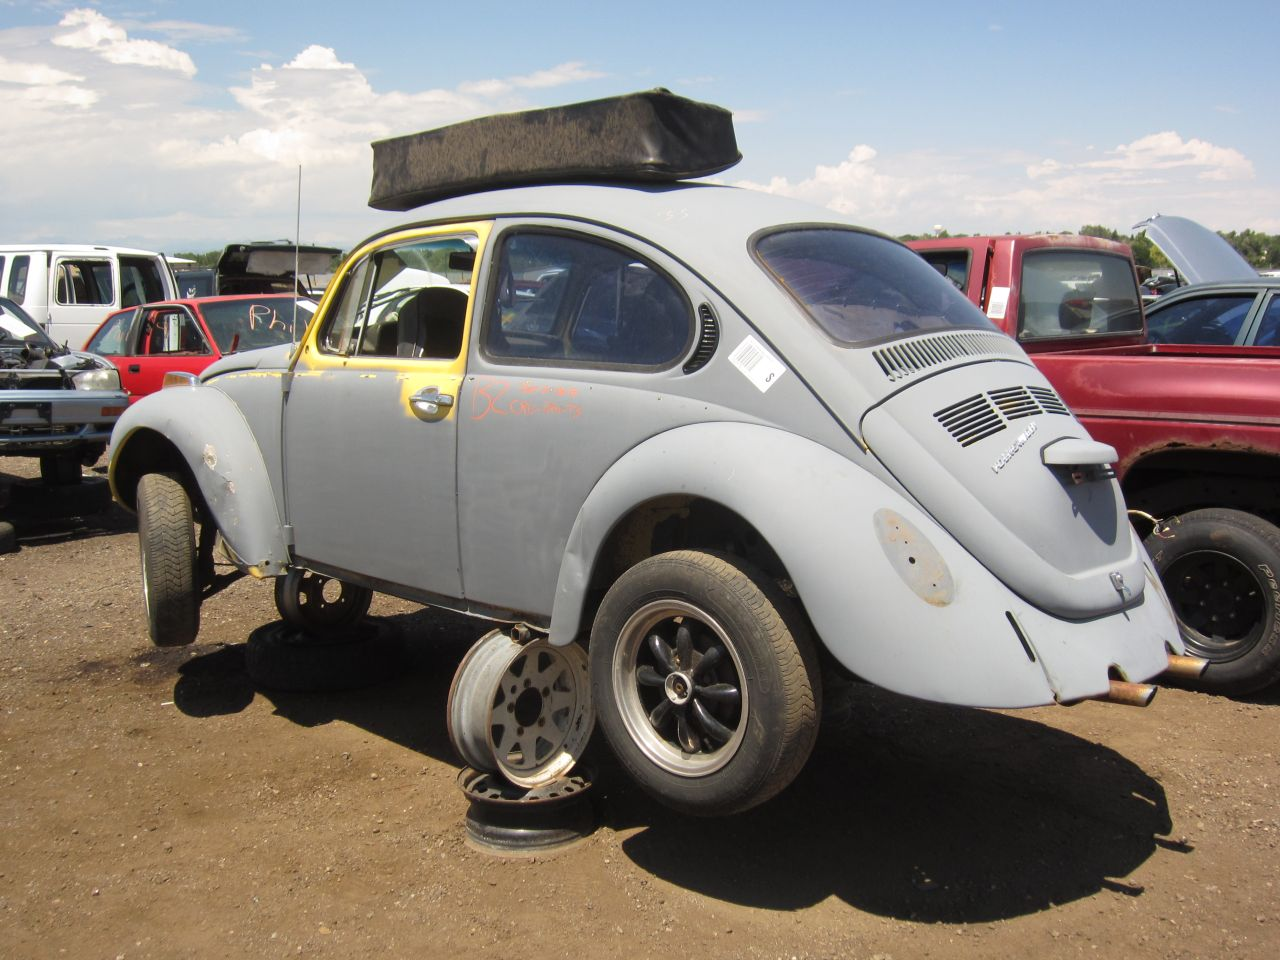 1971 Super Beetle Fuel Line Diagram Data Wiring Diagrams Also Vw Bug Brake On 1973 Engine Junkyard Find Volkswagen The Truth Chassis